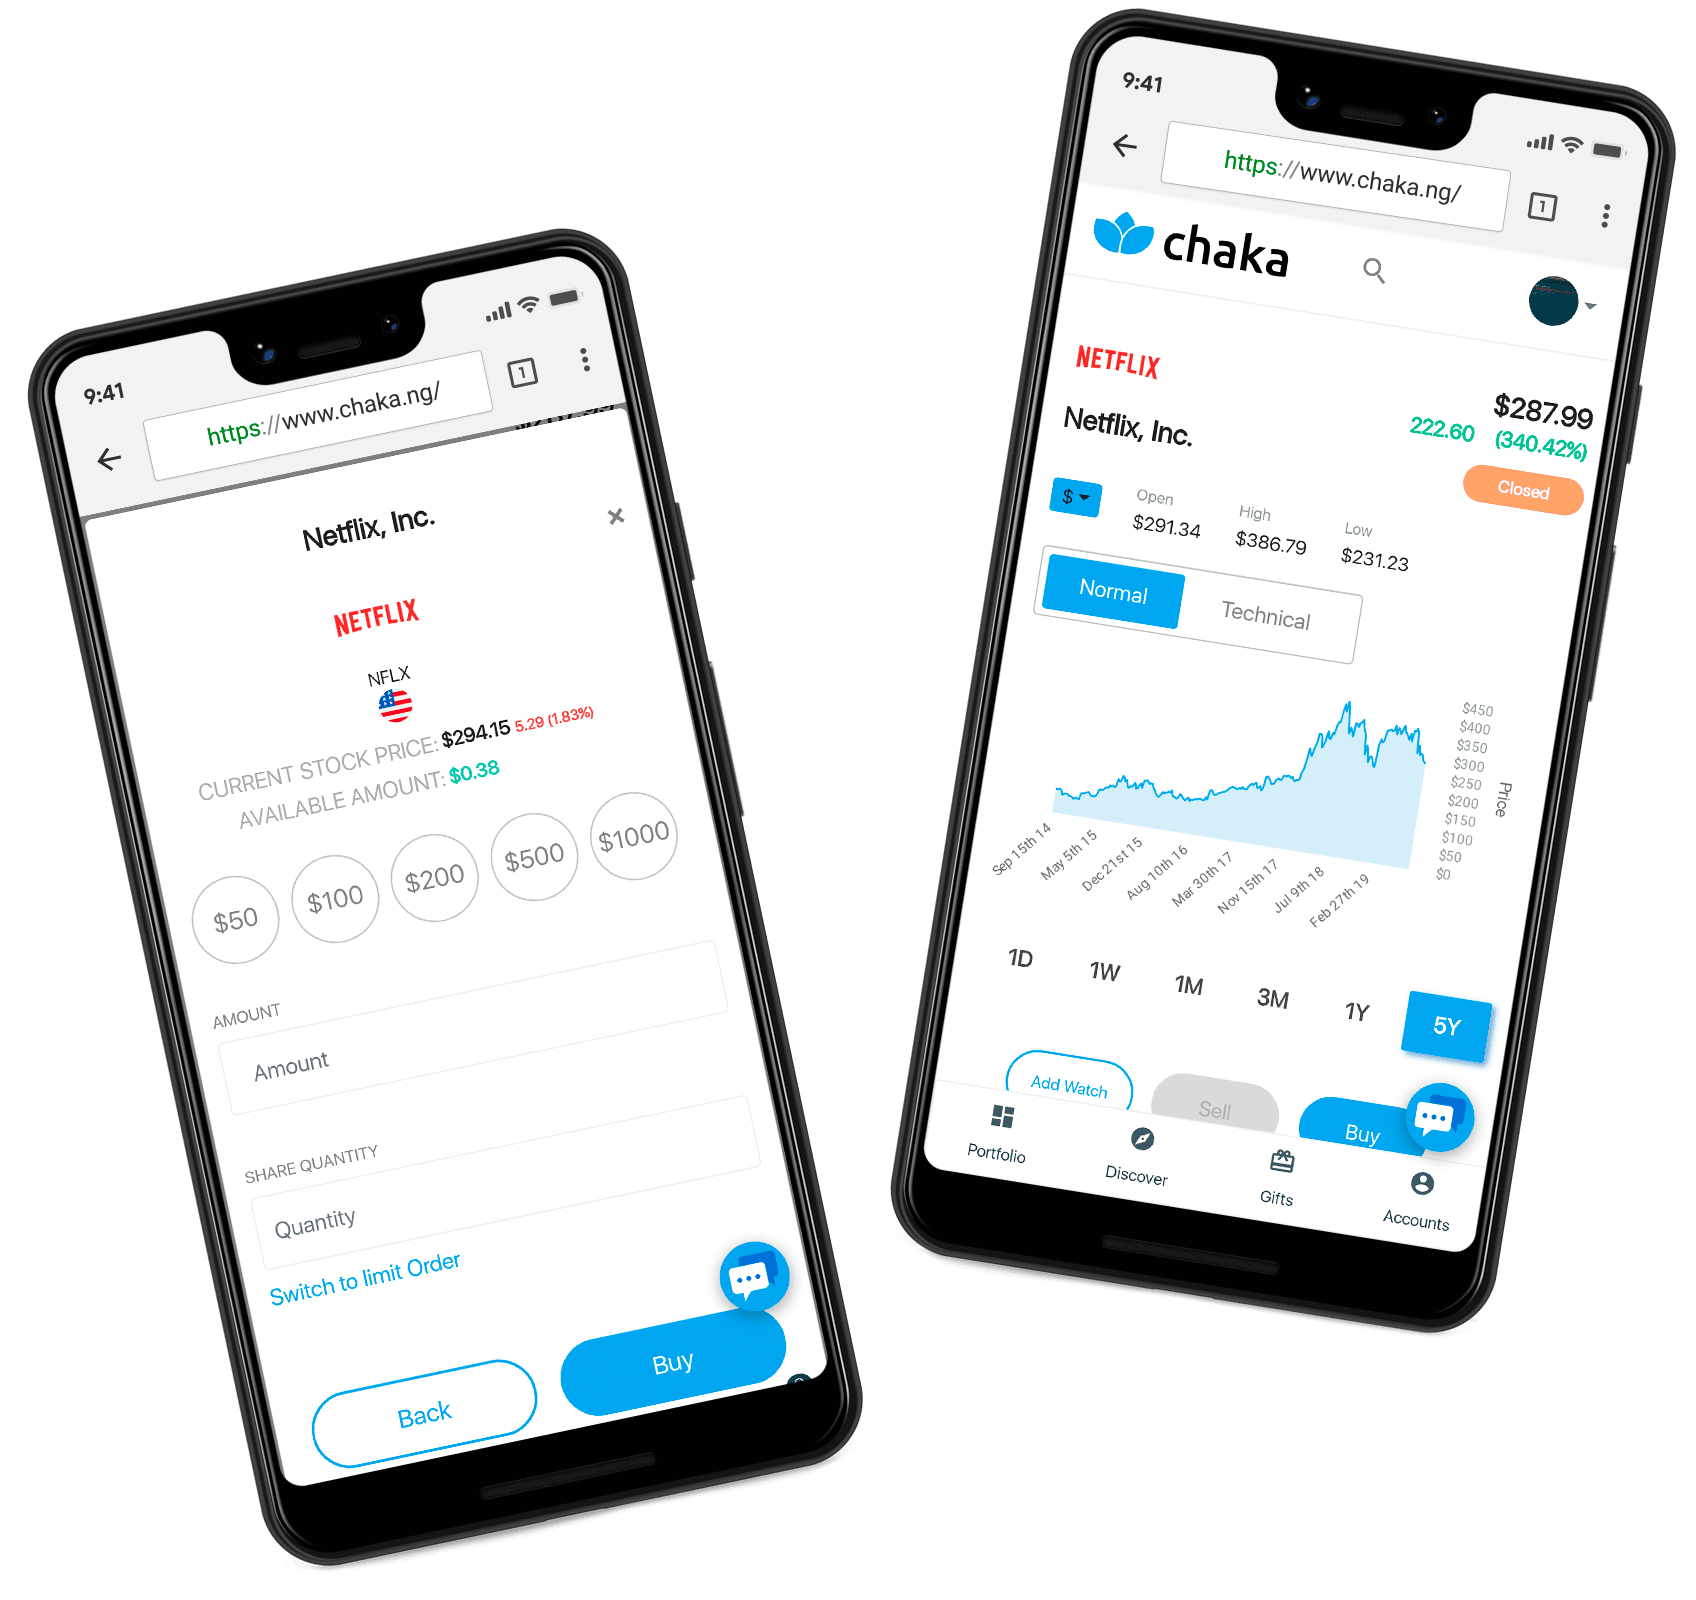 Chaka Investment App Review 2020: Fees, Features & Safety